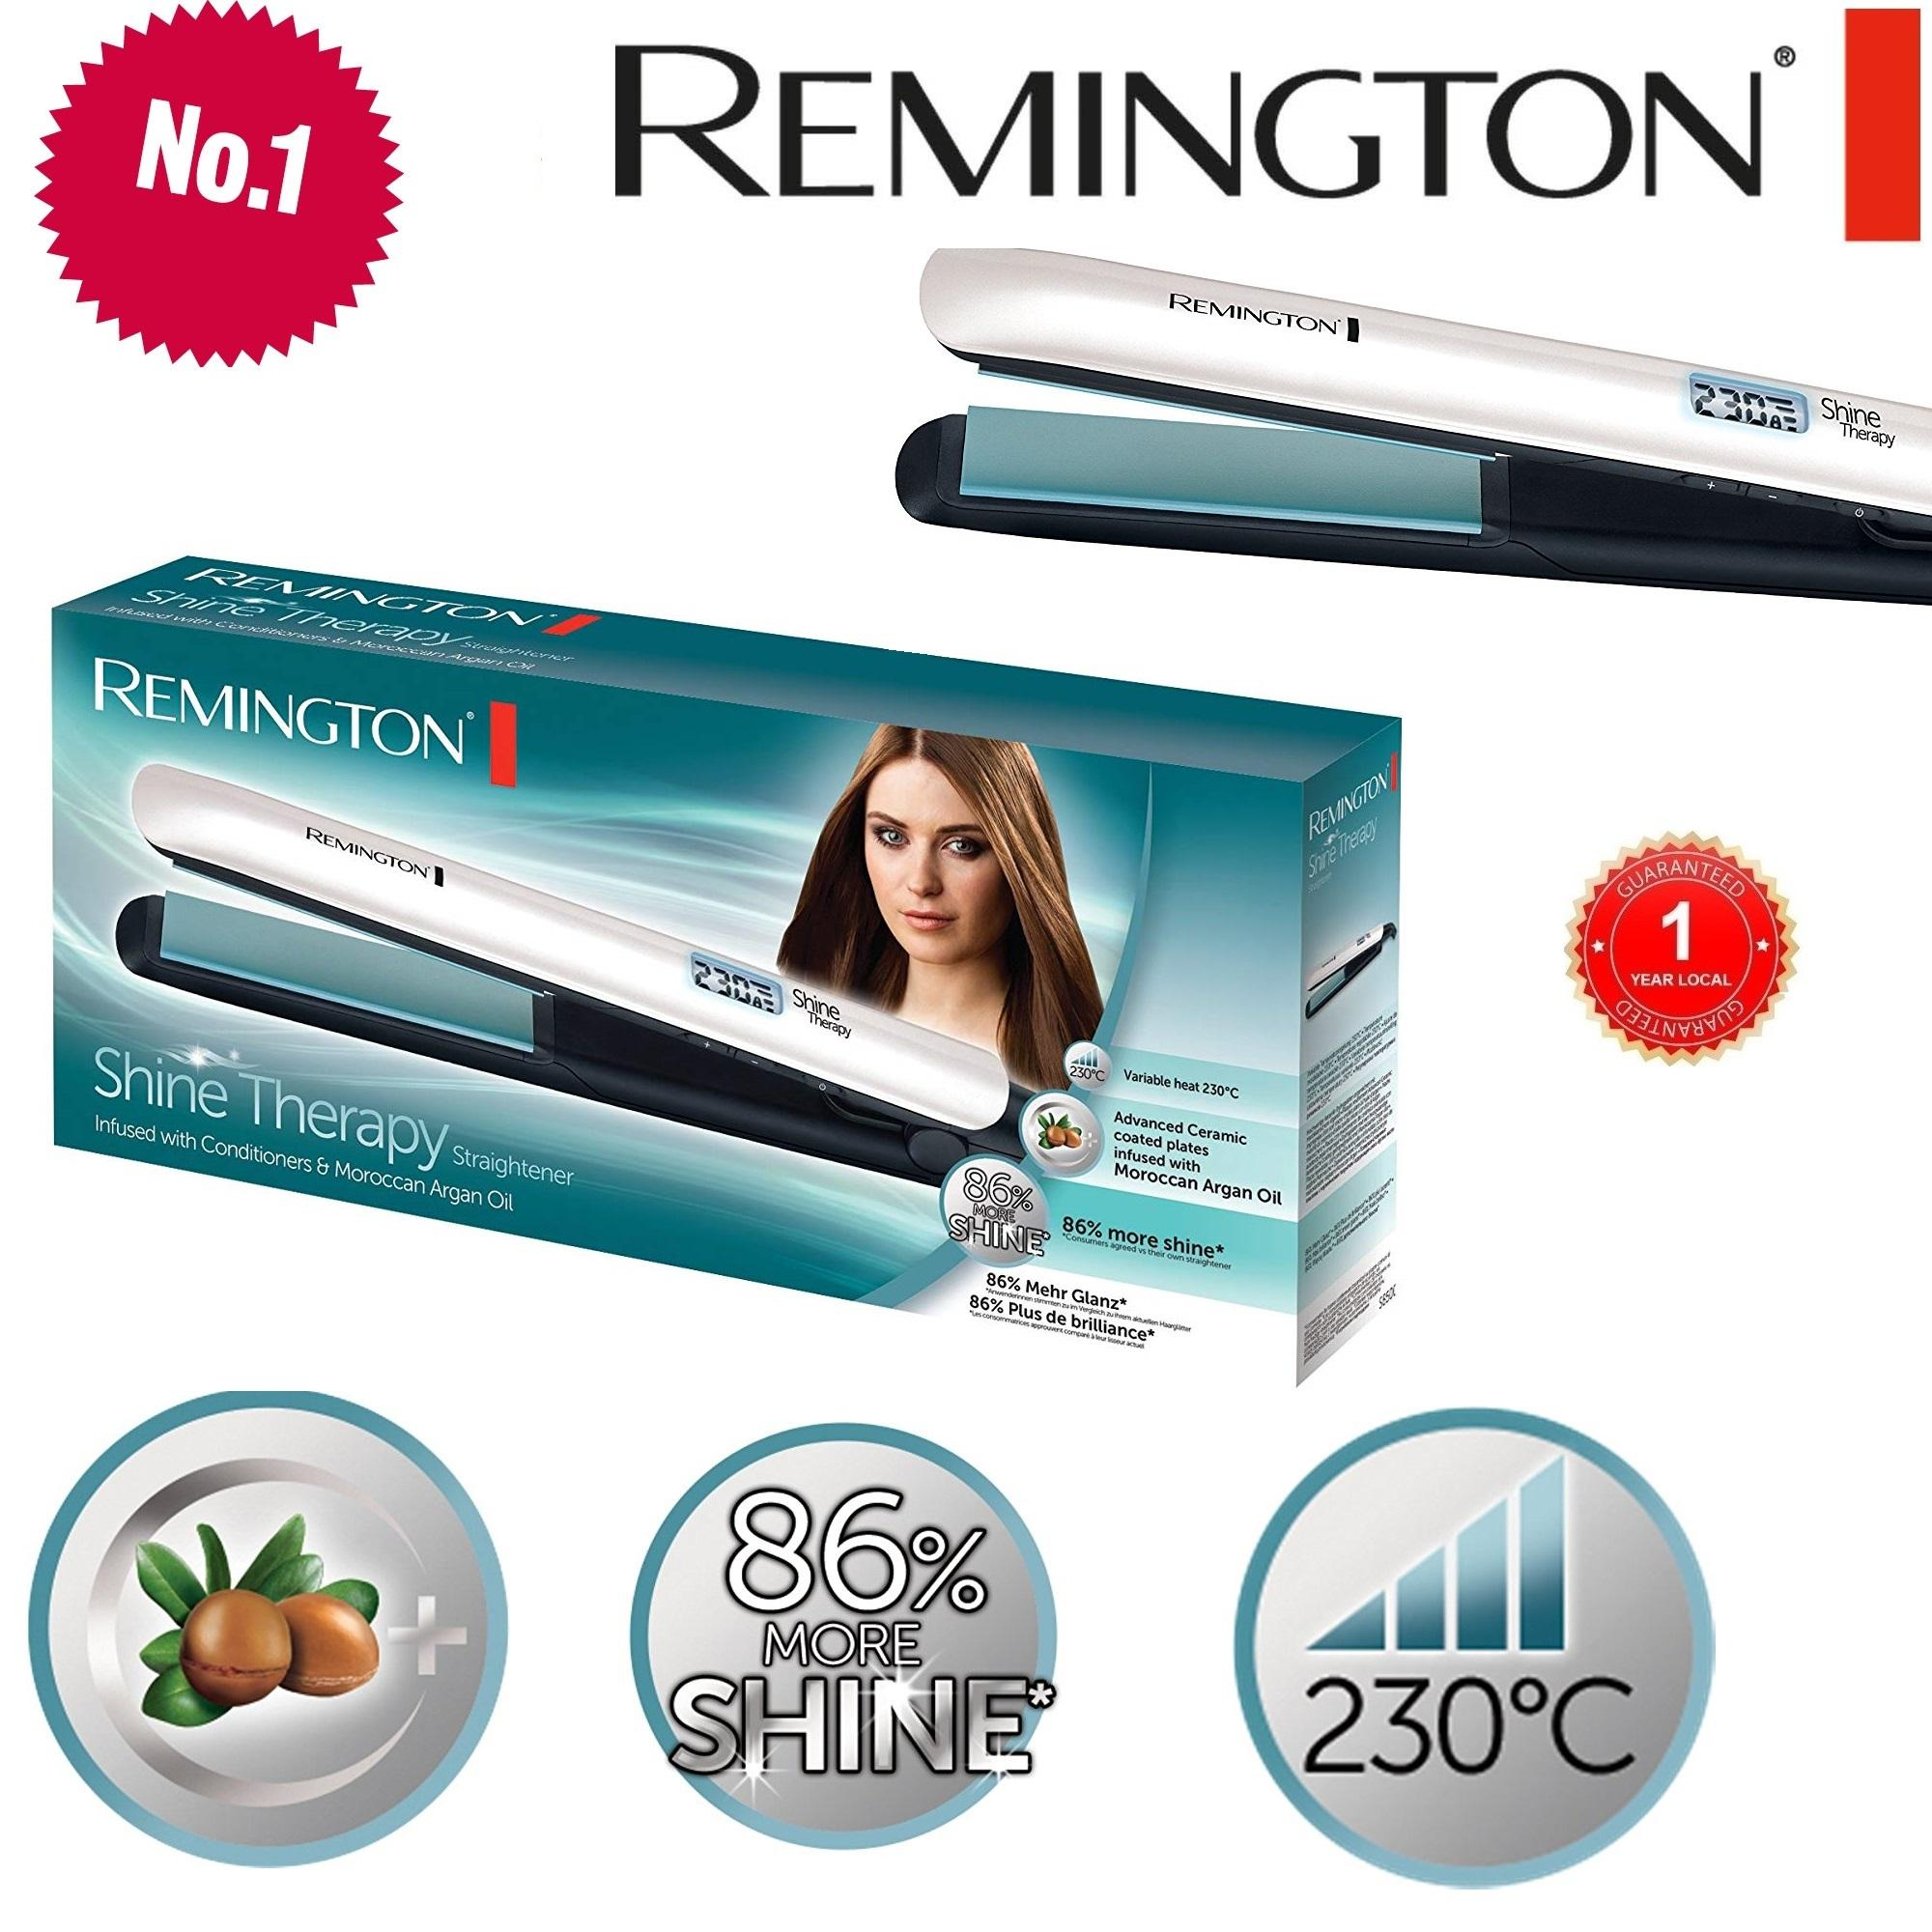 Hair Styling Appliance Dryer Curler Straightener I Catokan In Styler Rotating Iron Remington S8500 Moroccan Oil Shine Therapy Straightenerworldwide Voltage1 Year Local